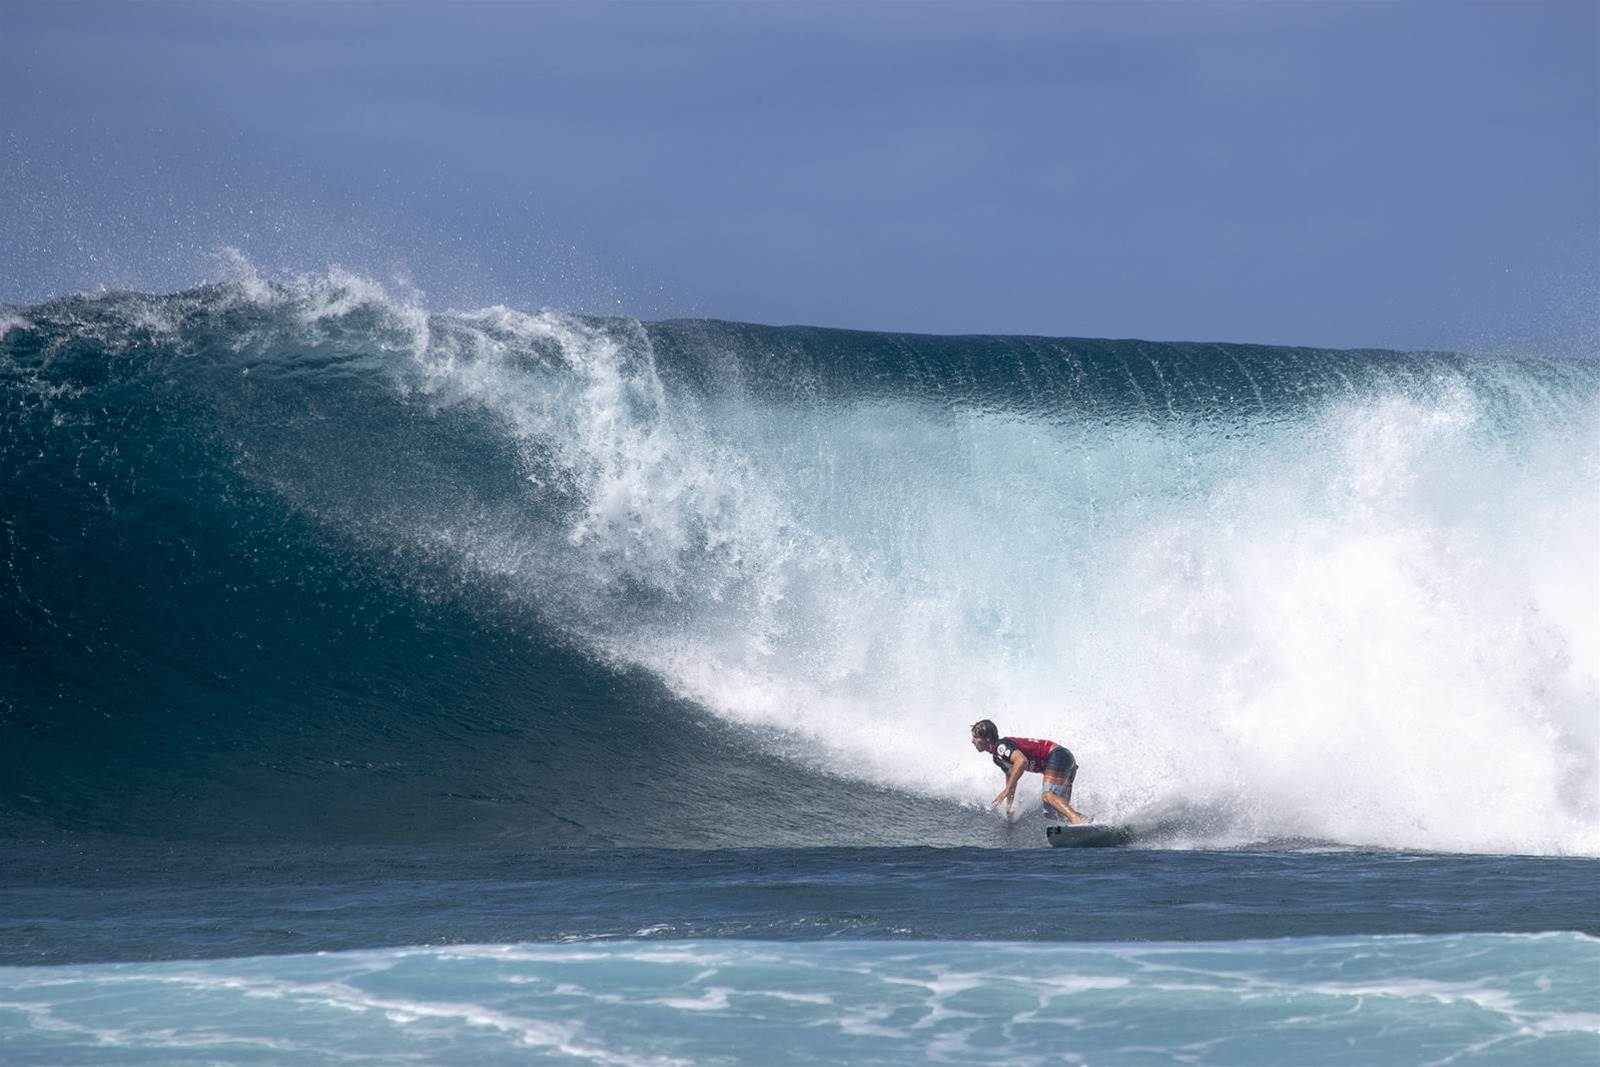 The Volcom Pipe Pro Quarters Are On Now!